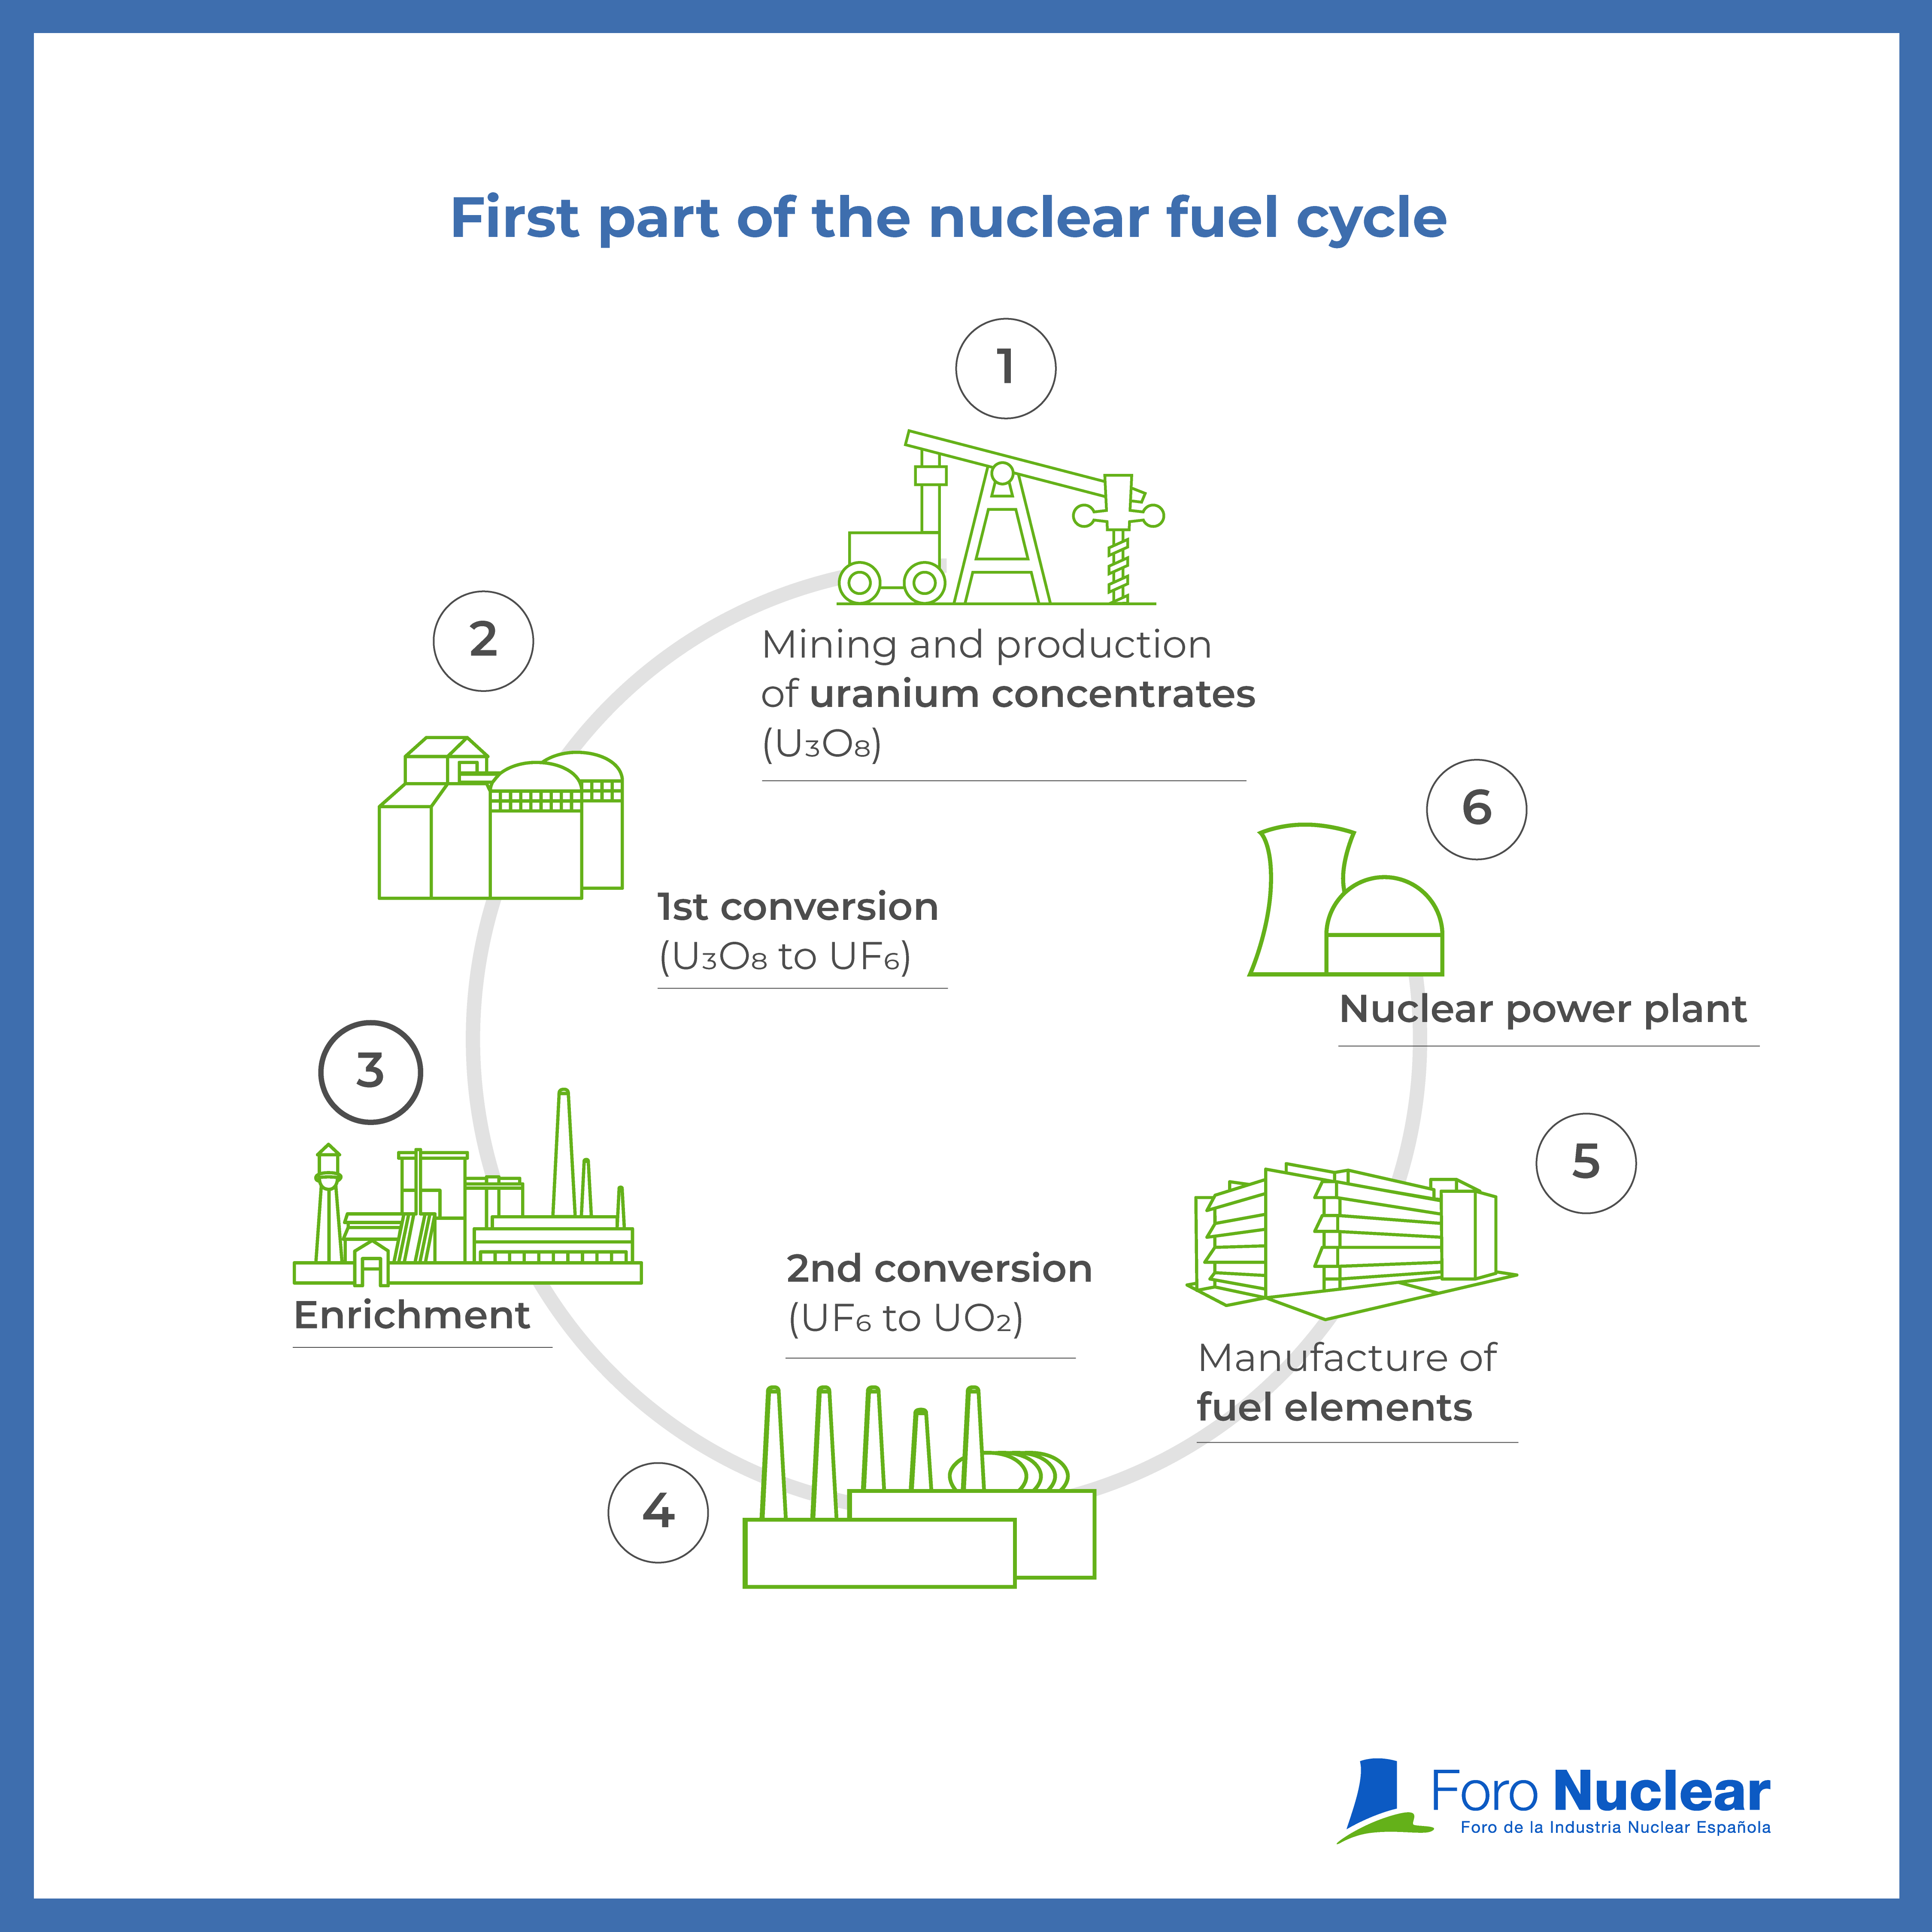 First part of the nuclear fuel cycle